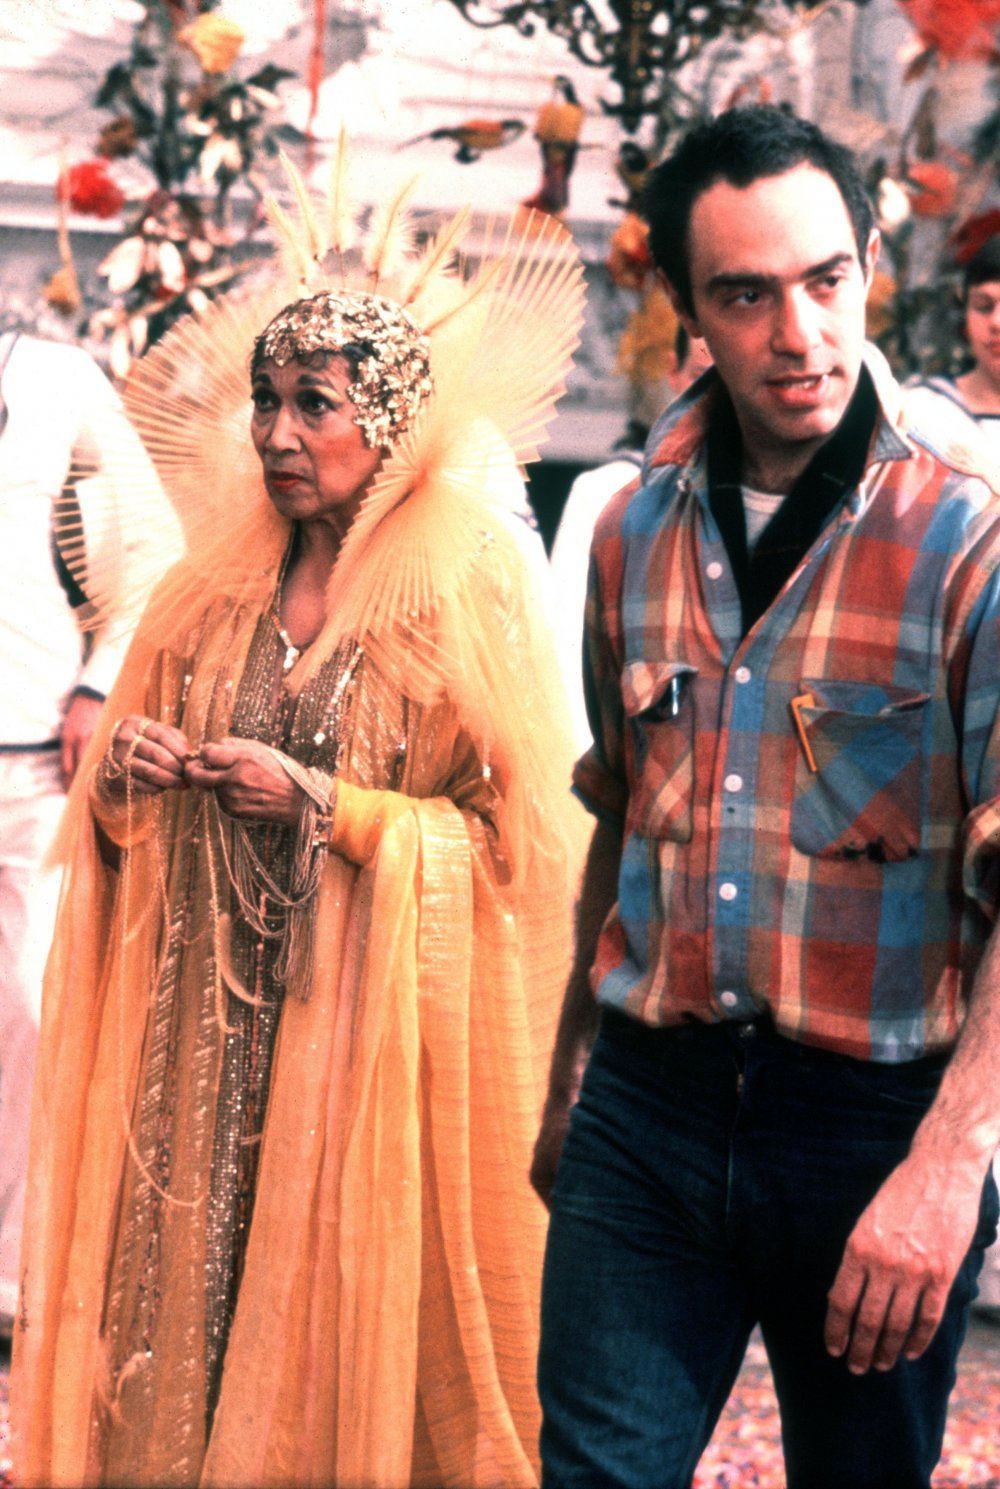 Derek Jarman with actor Elisabeth Welch on the set of The Tempest (1979)